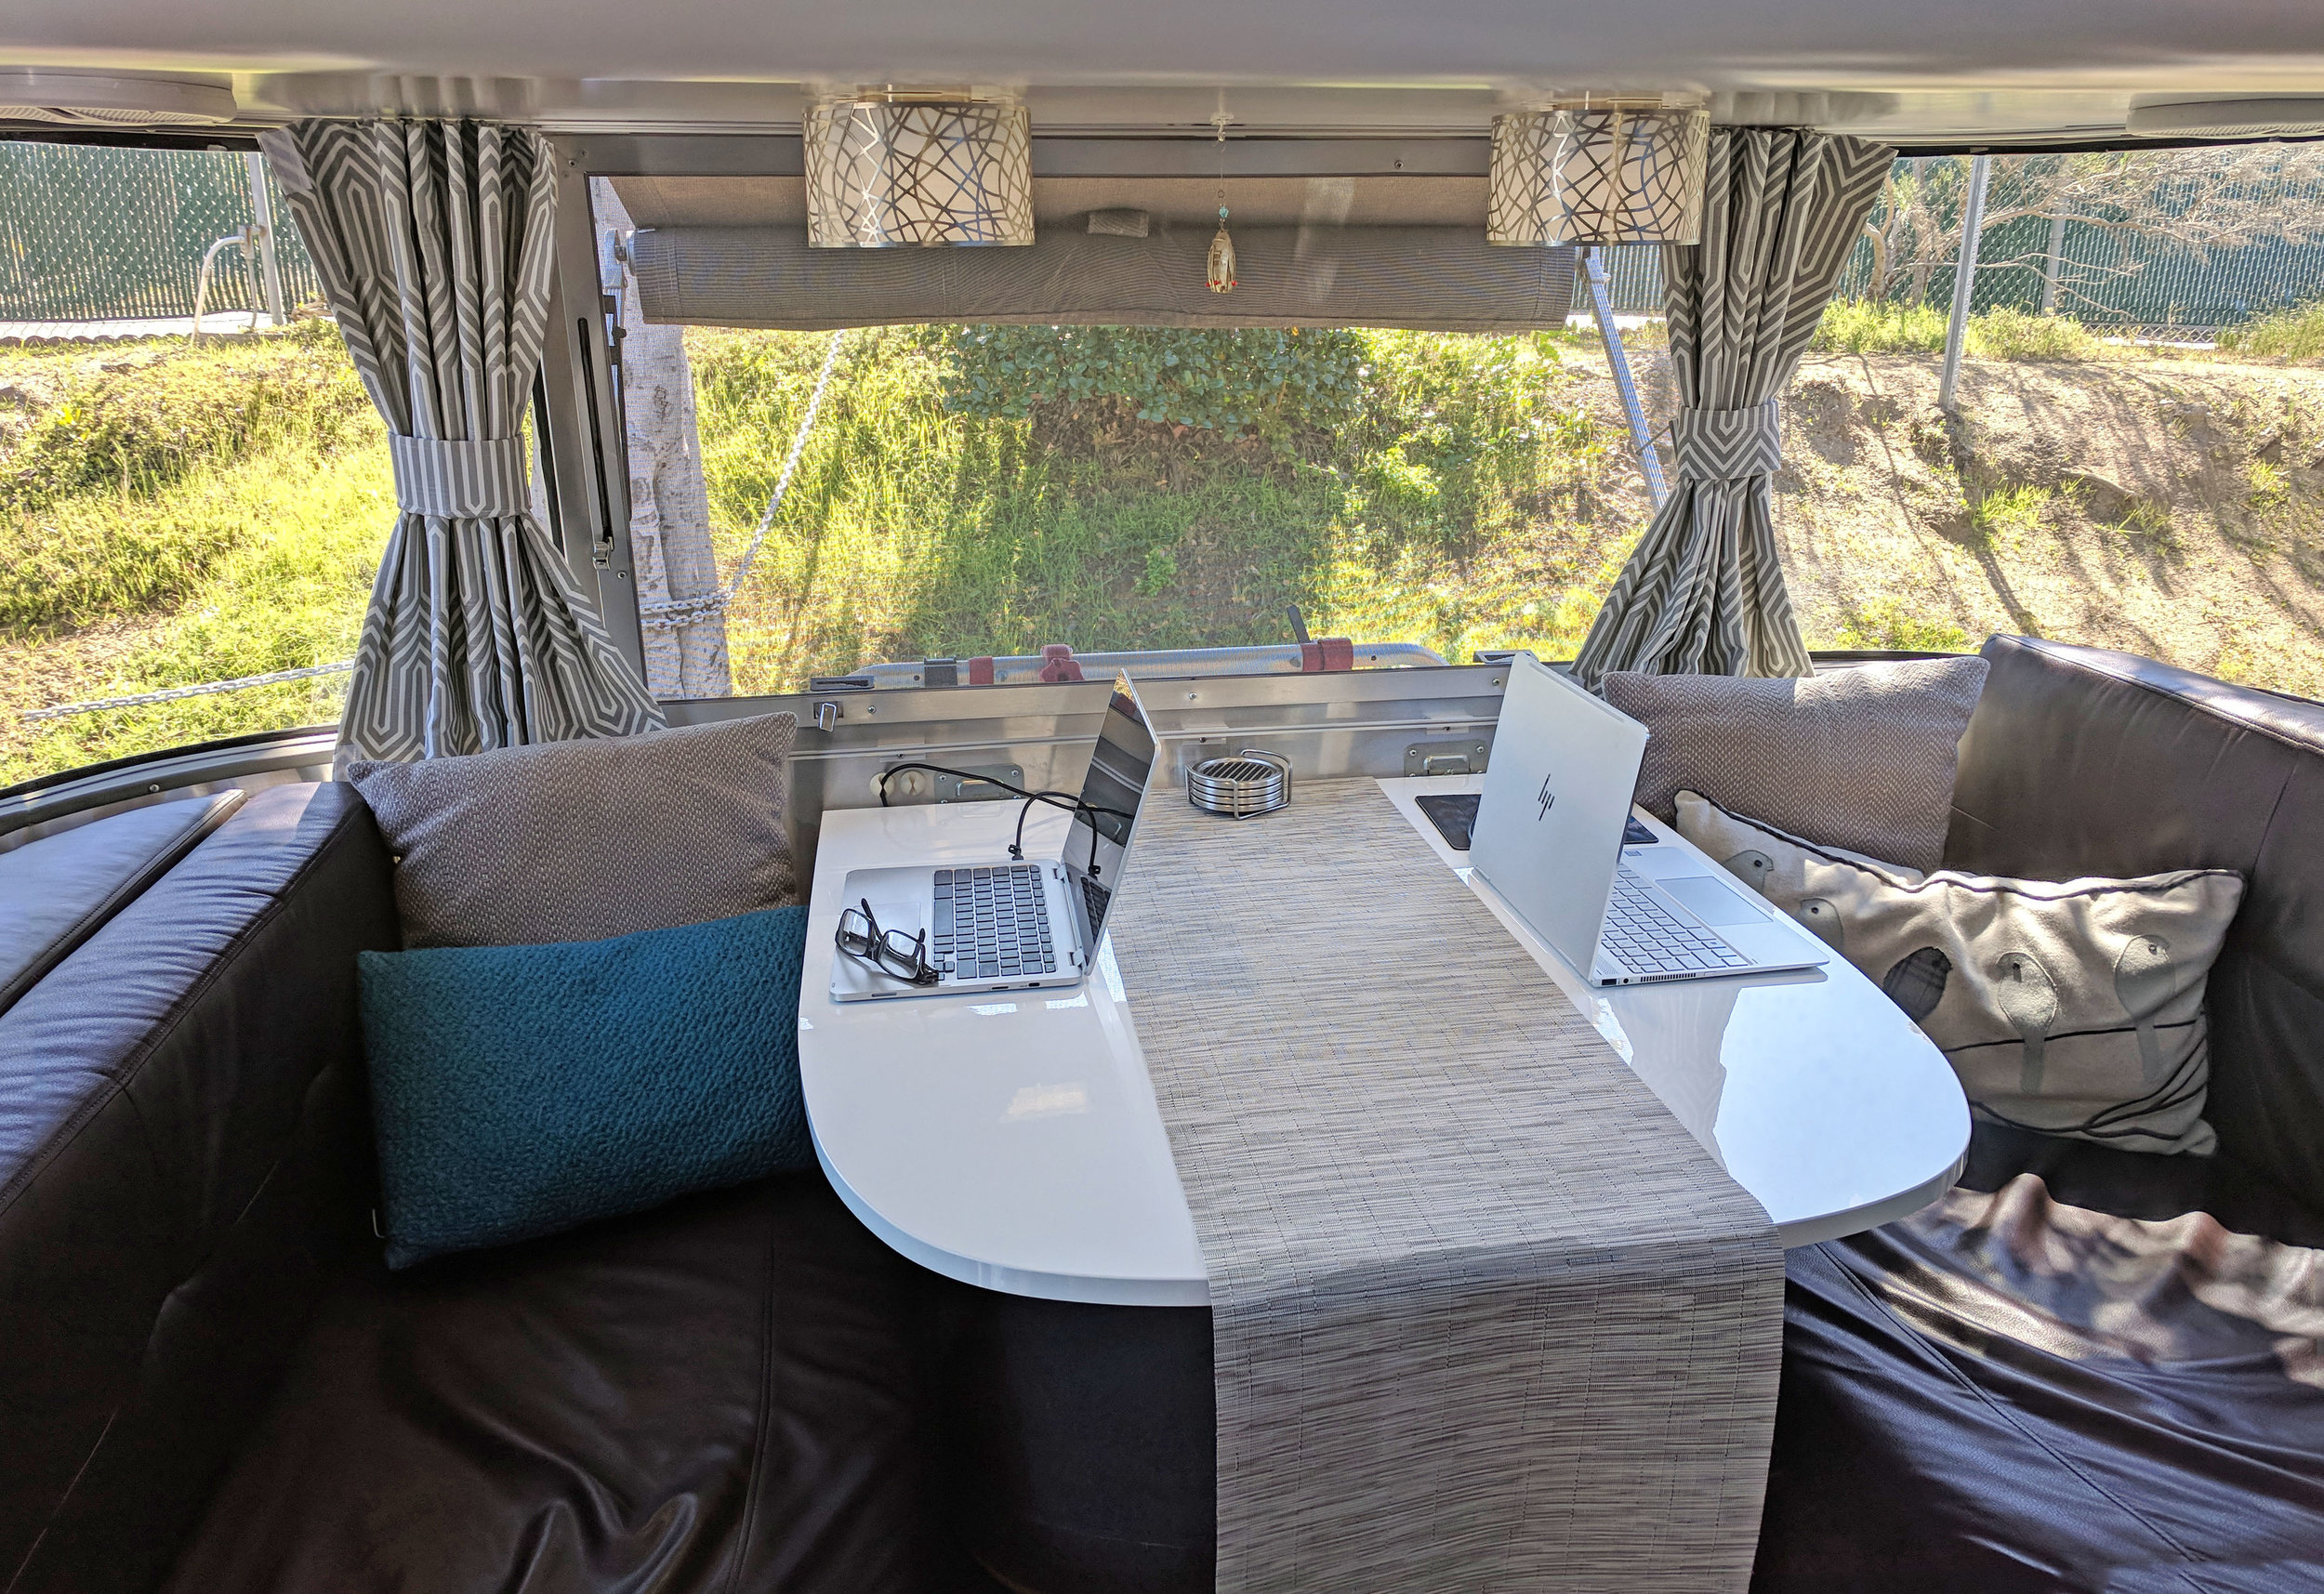 This is where we spend most of our time in the trailer. Working, eating and relaxing. We changed these curtains out too, and replaced the table top with a bright white one.